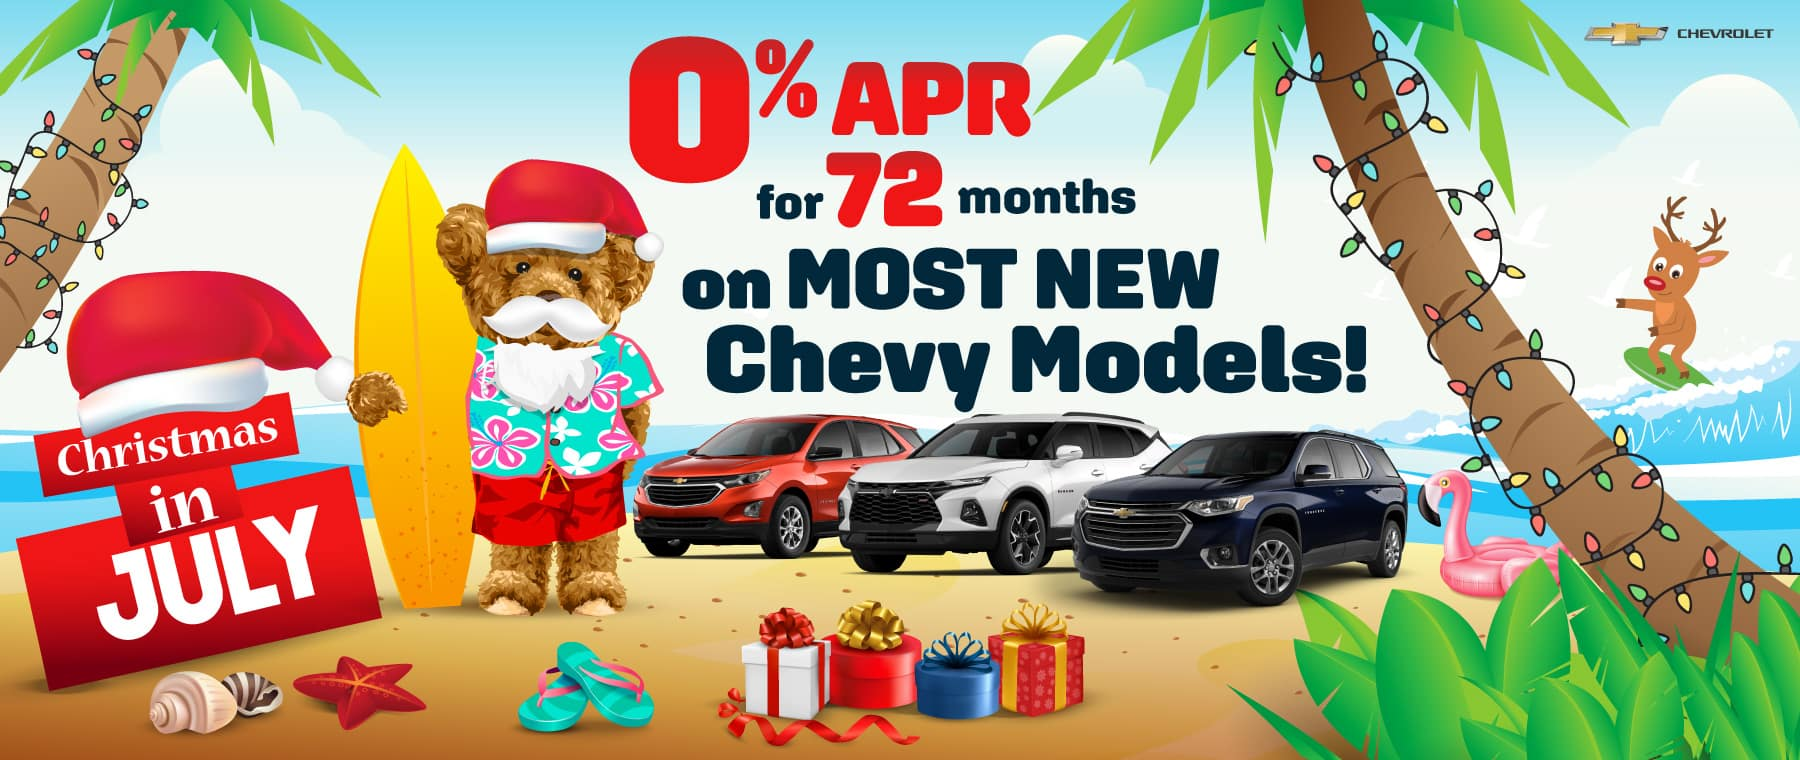 0% APR for 72 momths plus NO Payments for the rest of Summer!